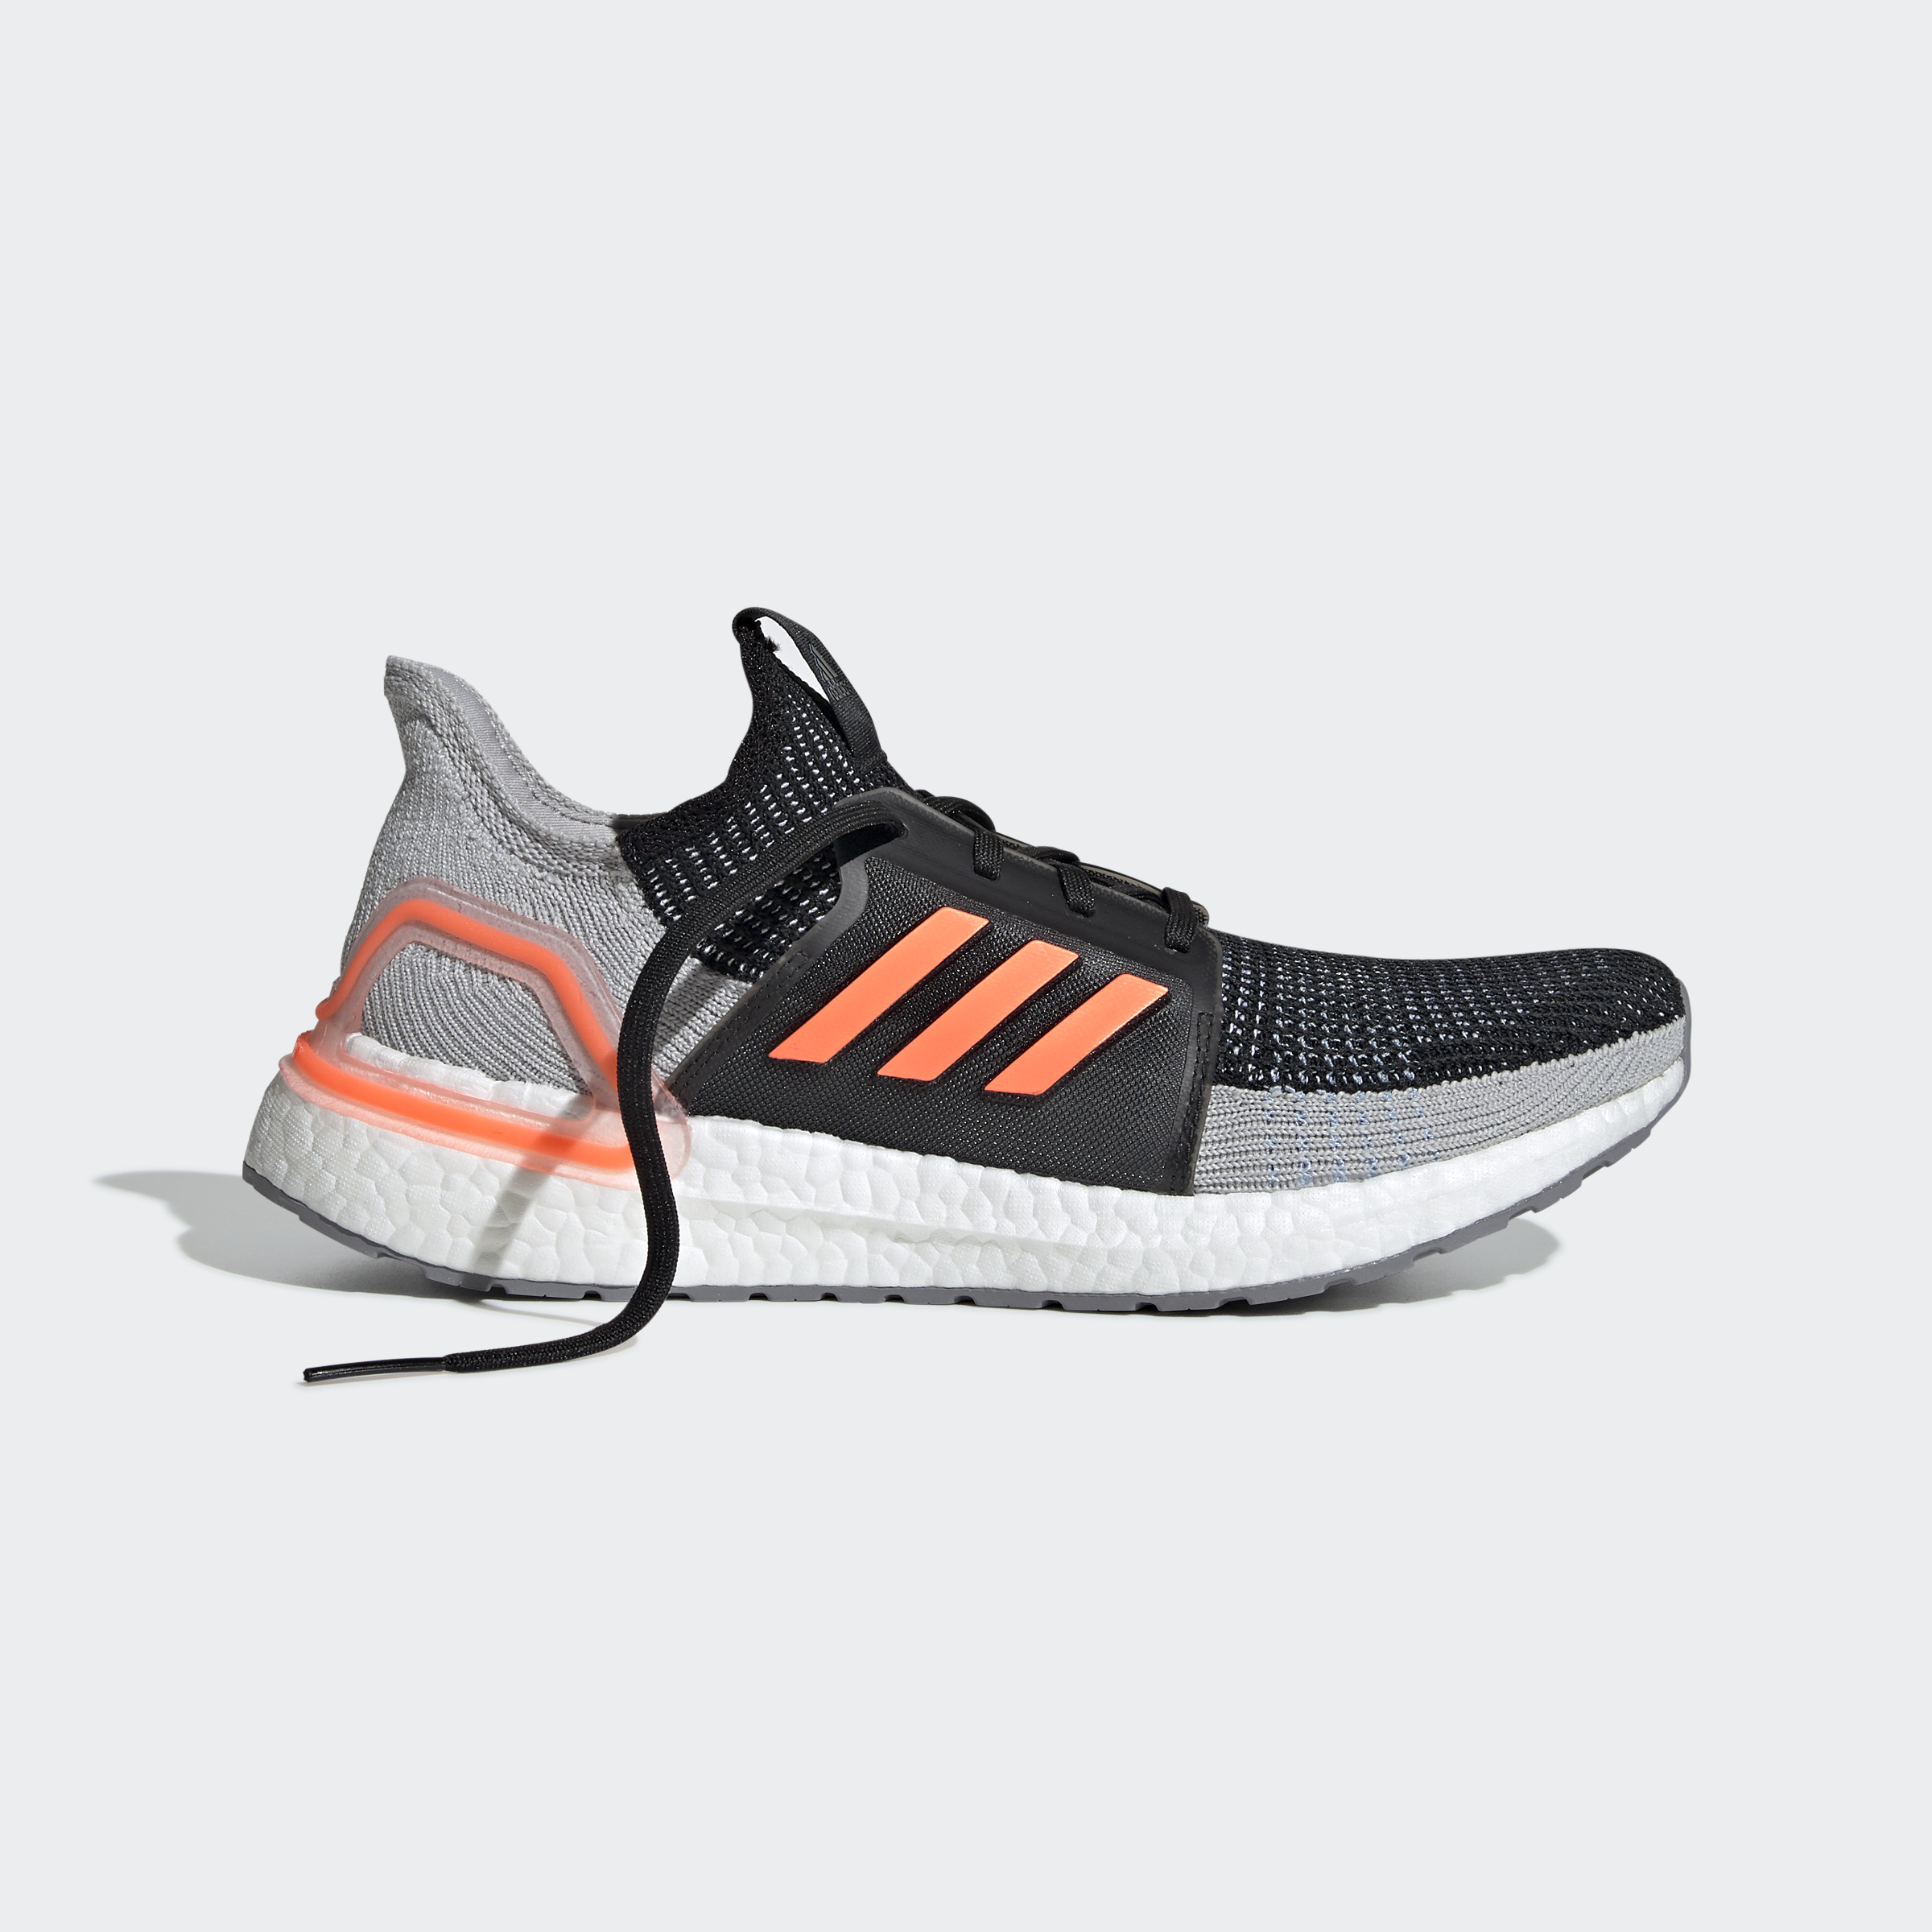 adidas-Ultraboost-19-Shoes-Athletic-amp-Sneakers thumbnail 125